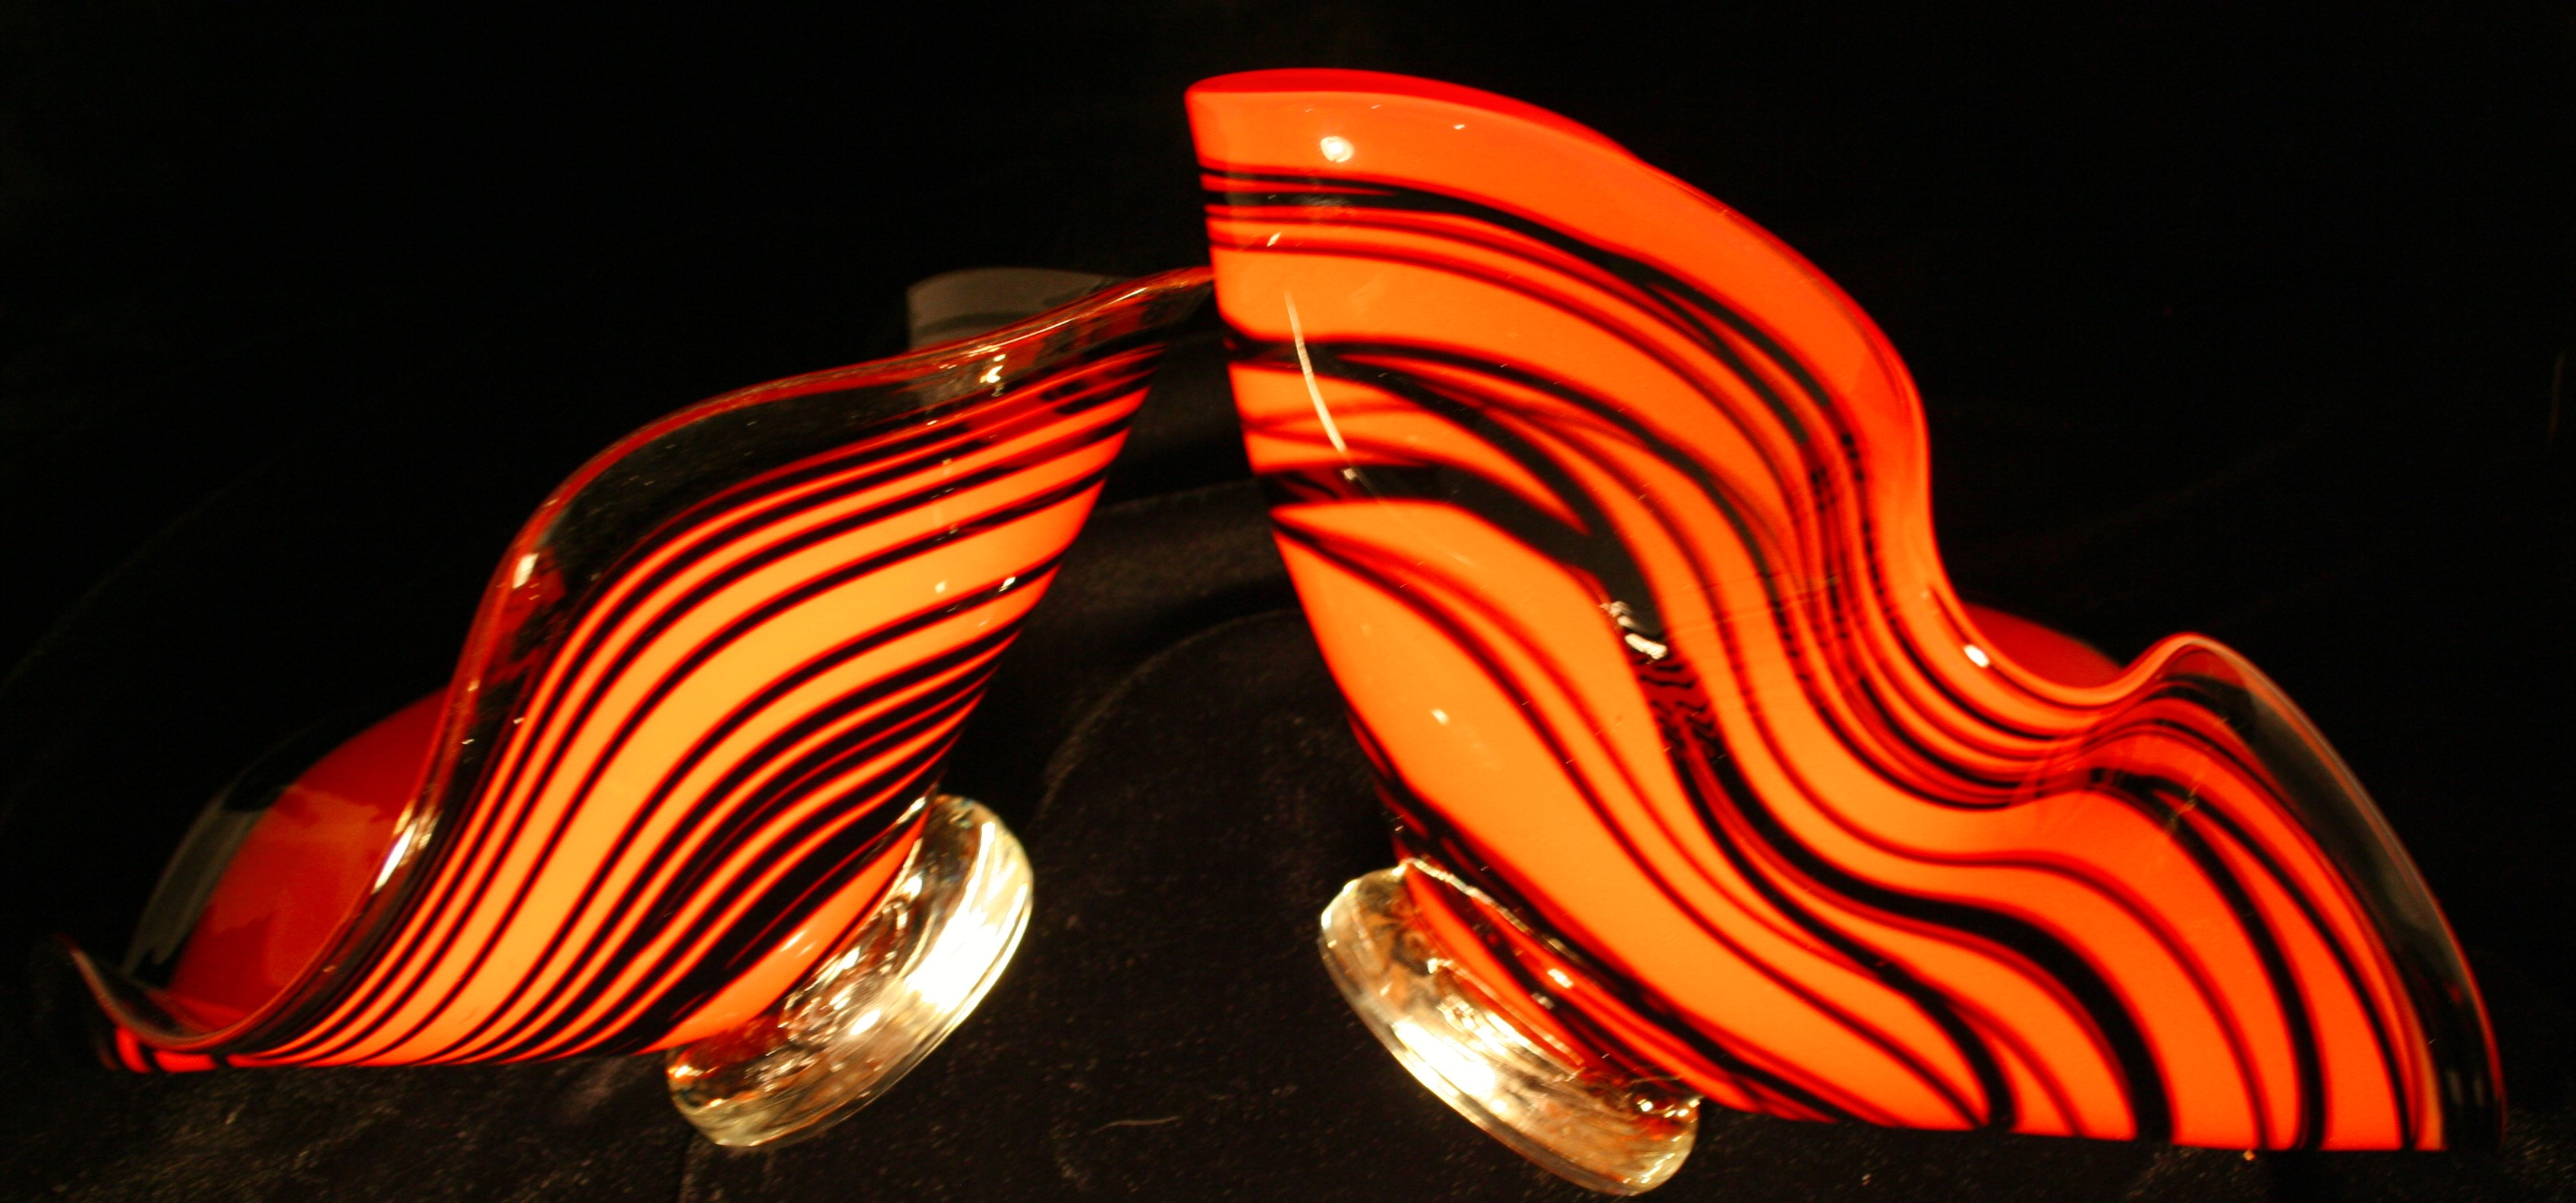 Red with black wrap glass bowl